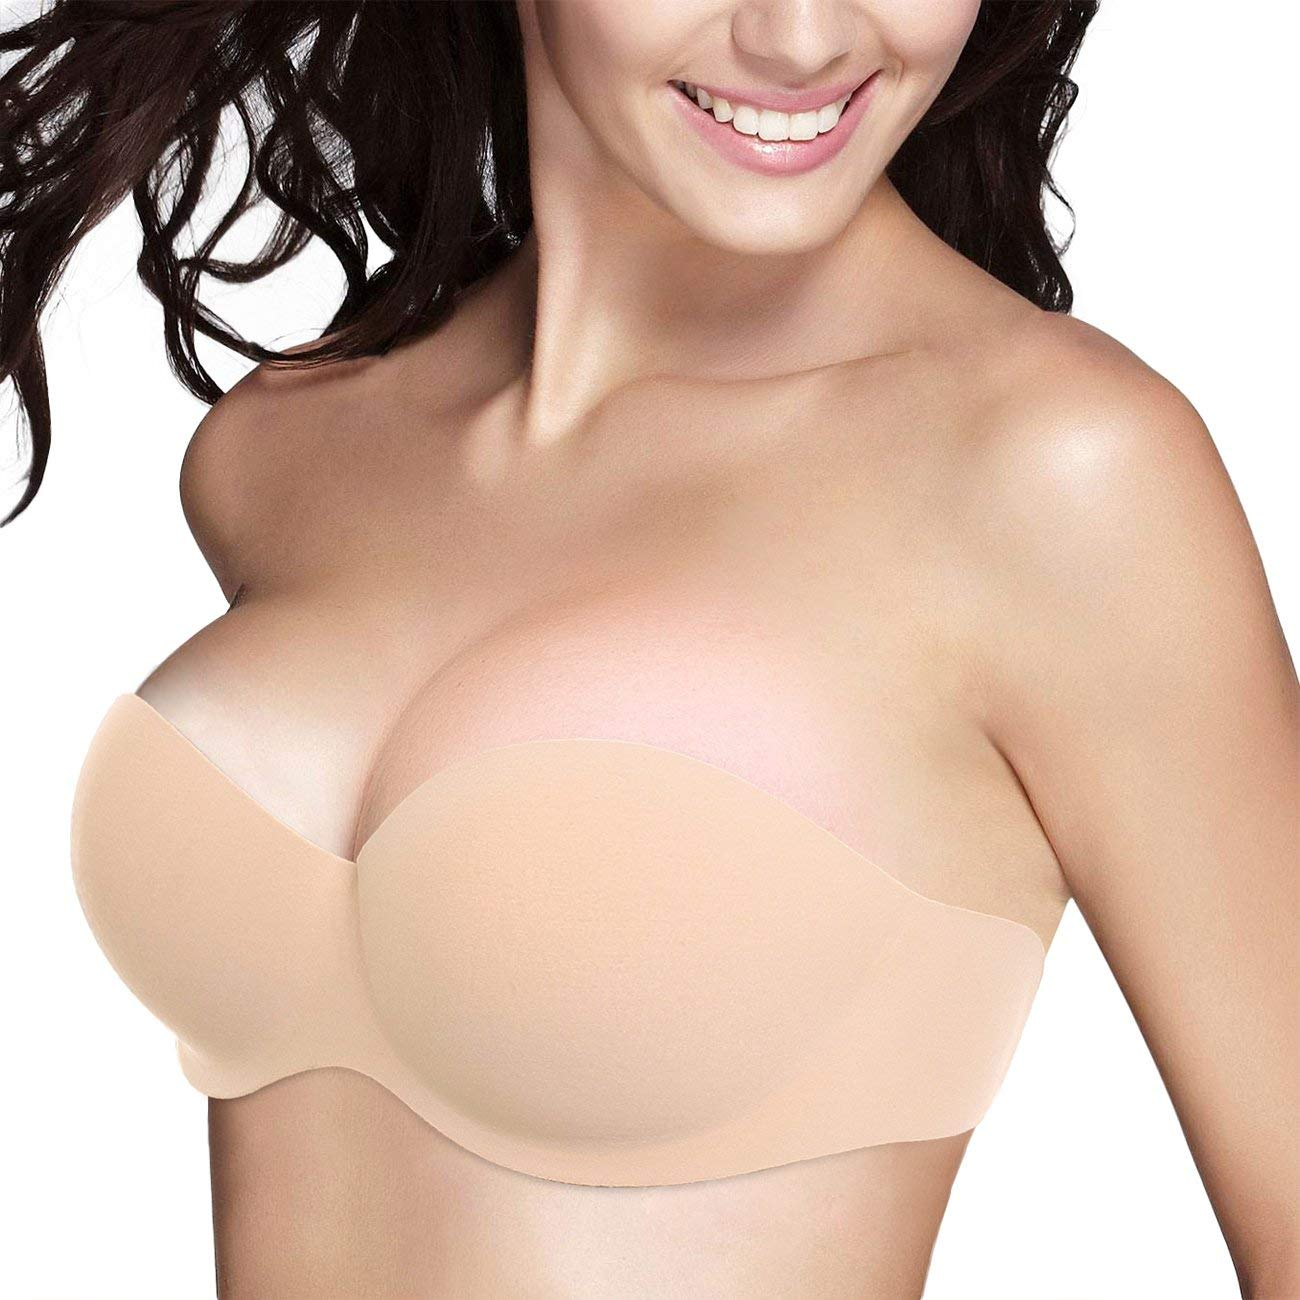 c3085bd503e Get Quotations ·  New 2018 Version  Plus Size Strapless Adhesive Bra for  Women Push Up One Piece